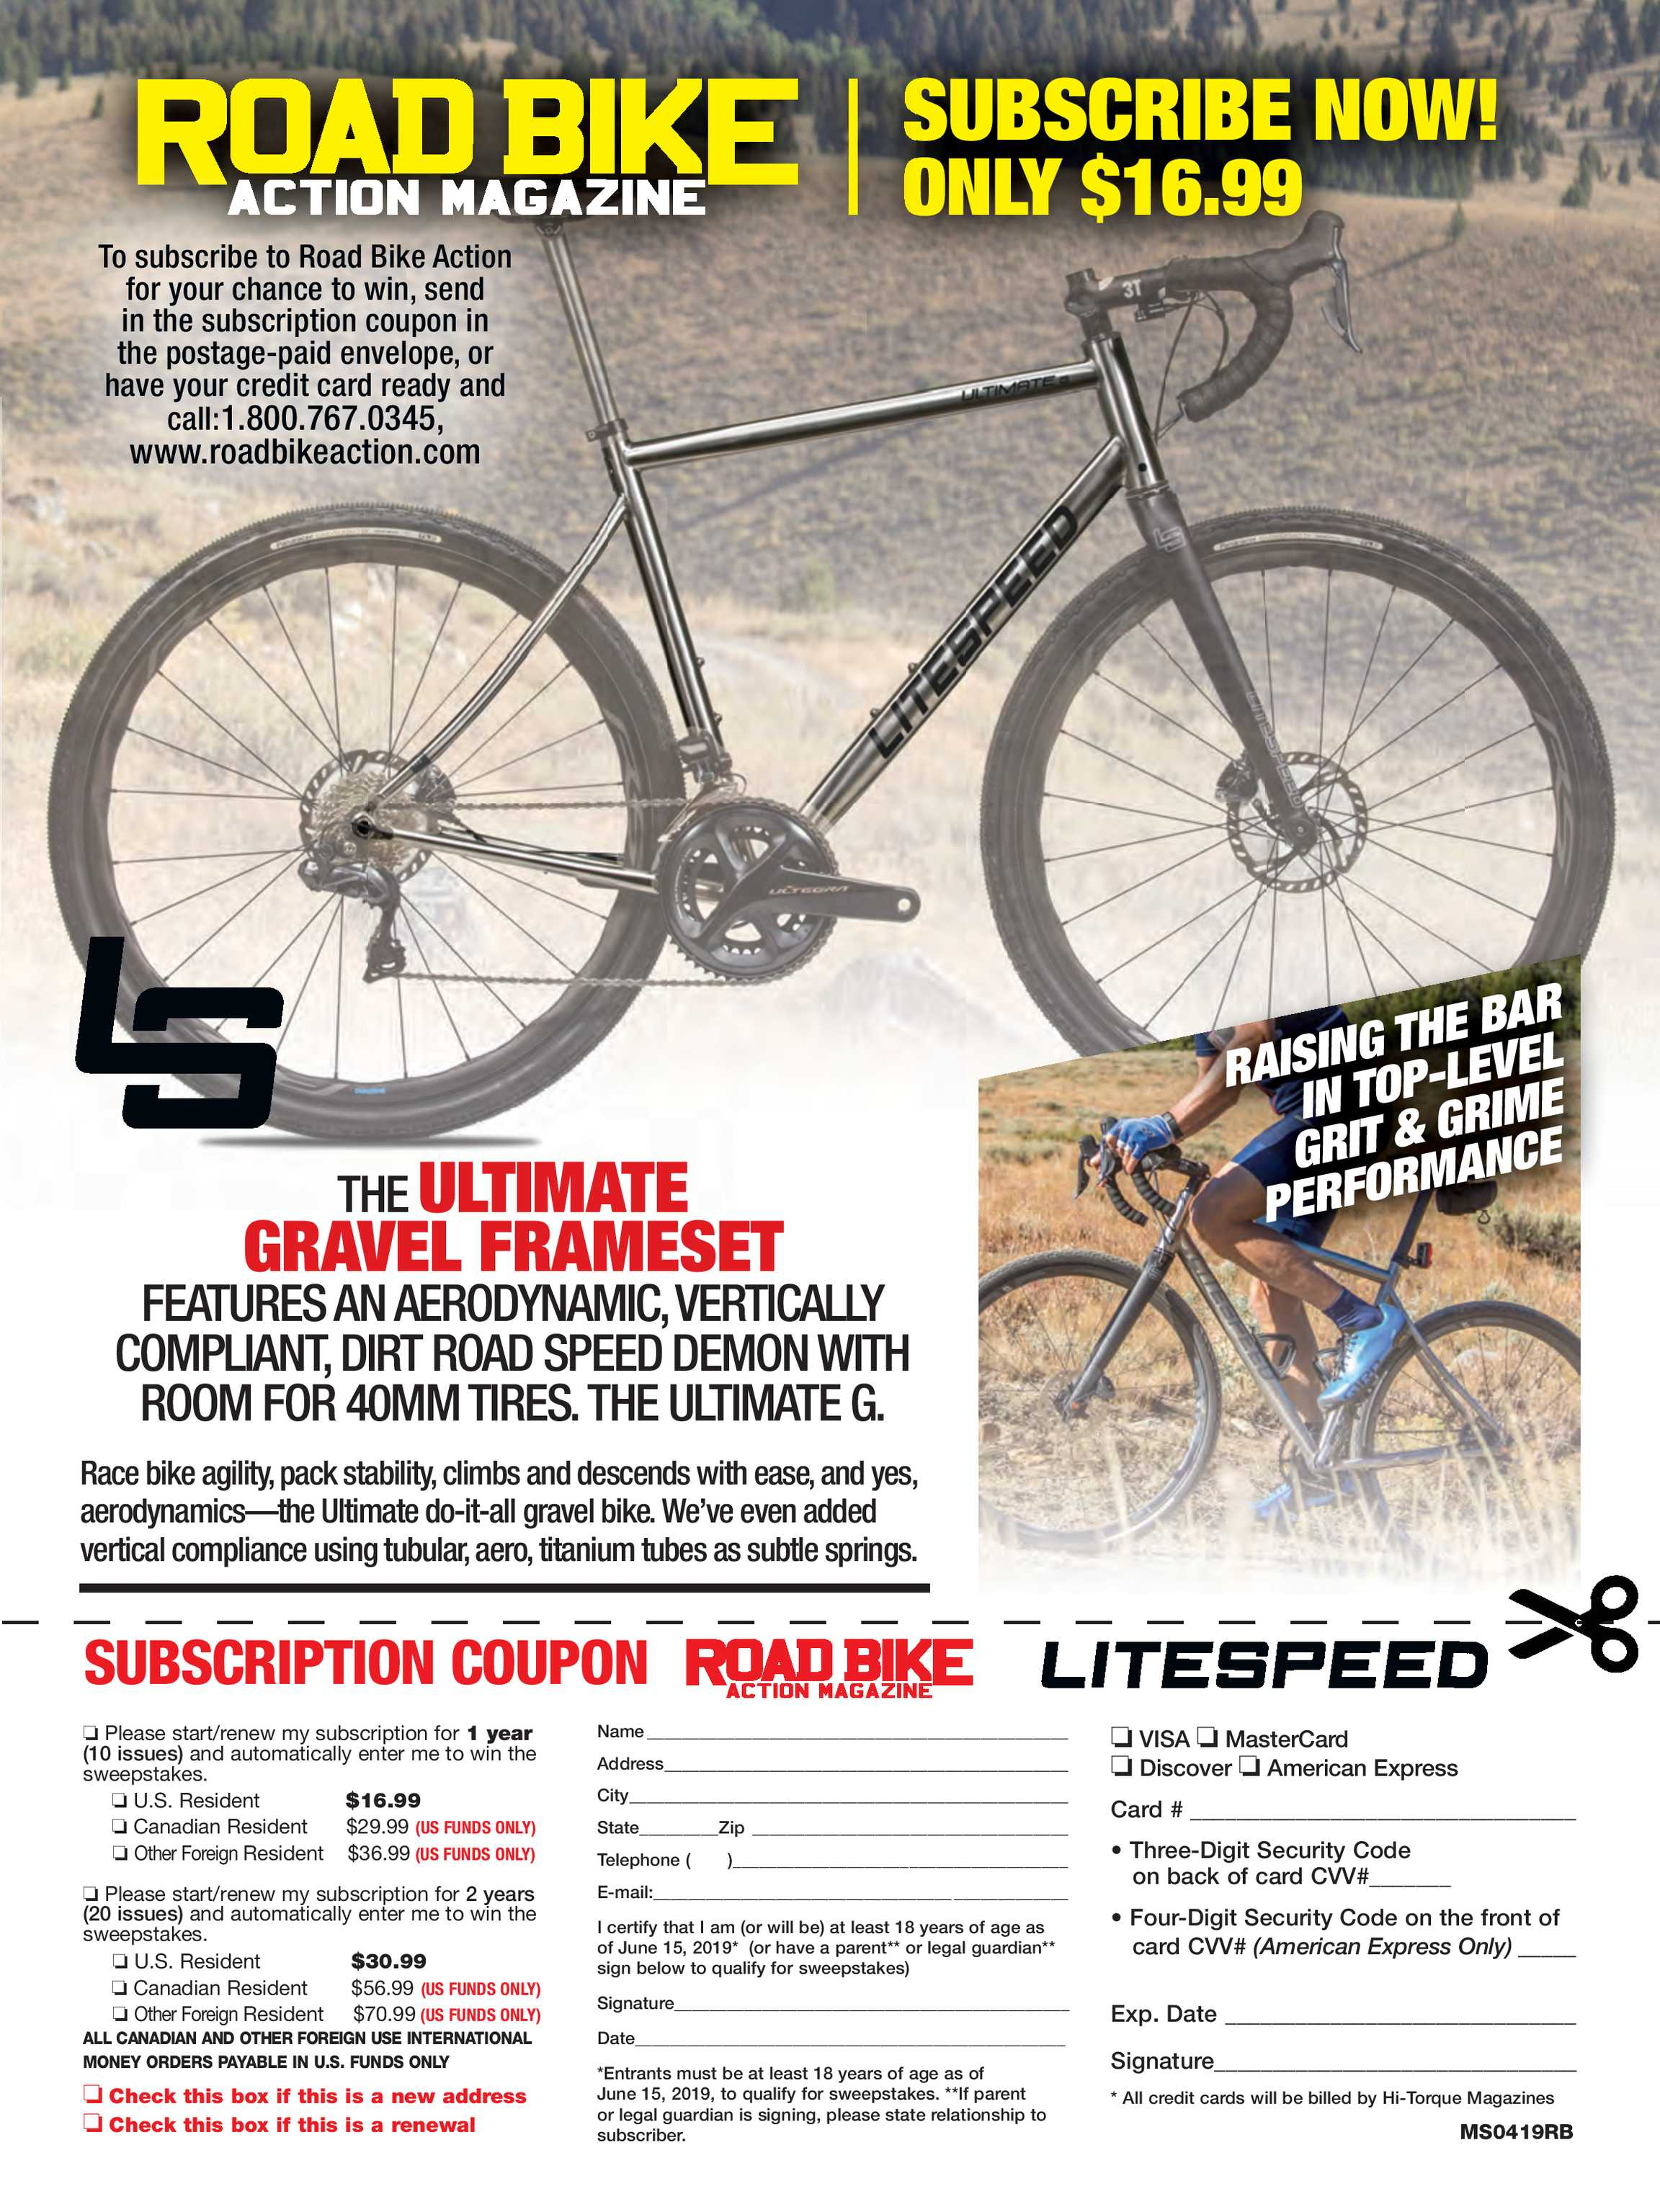 Road Bike Action Magazine - May 2019 - page 52